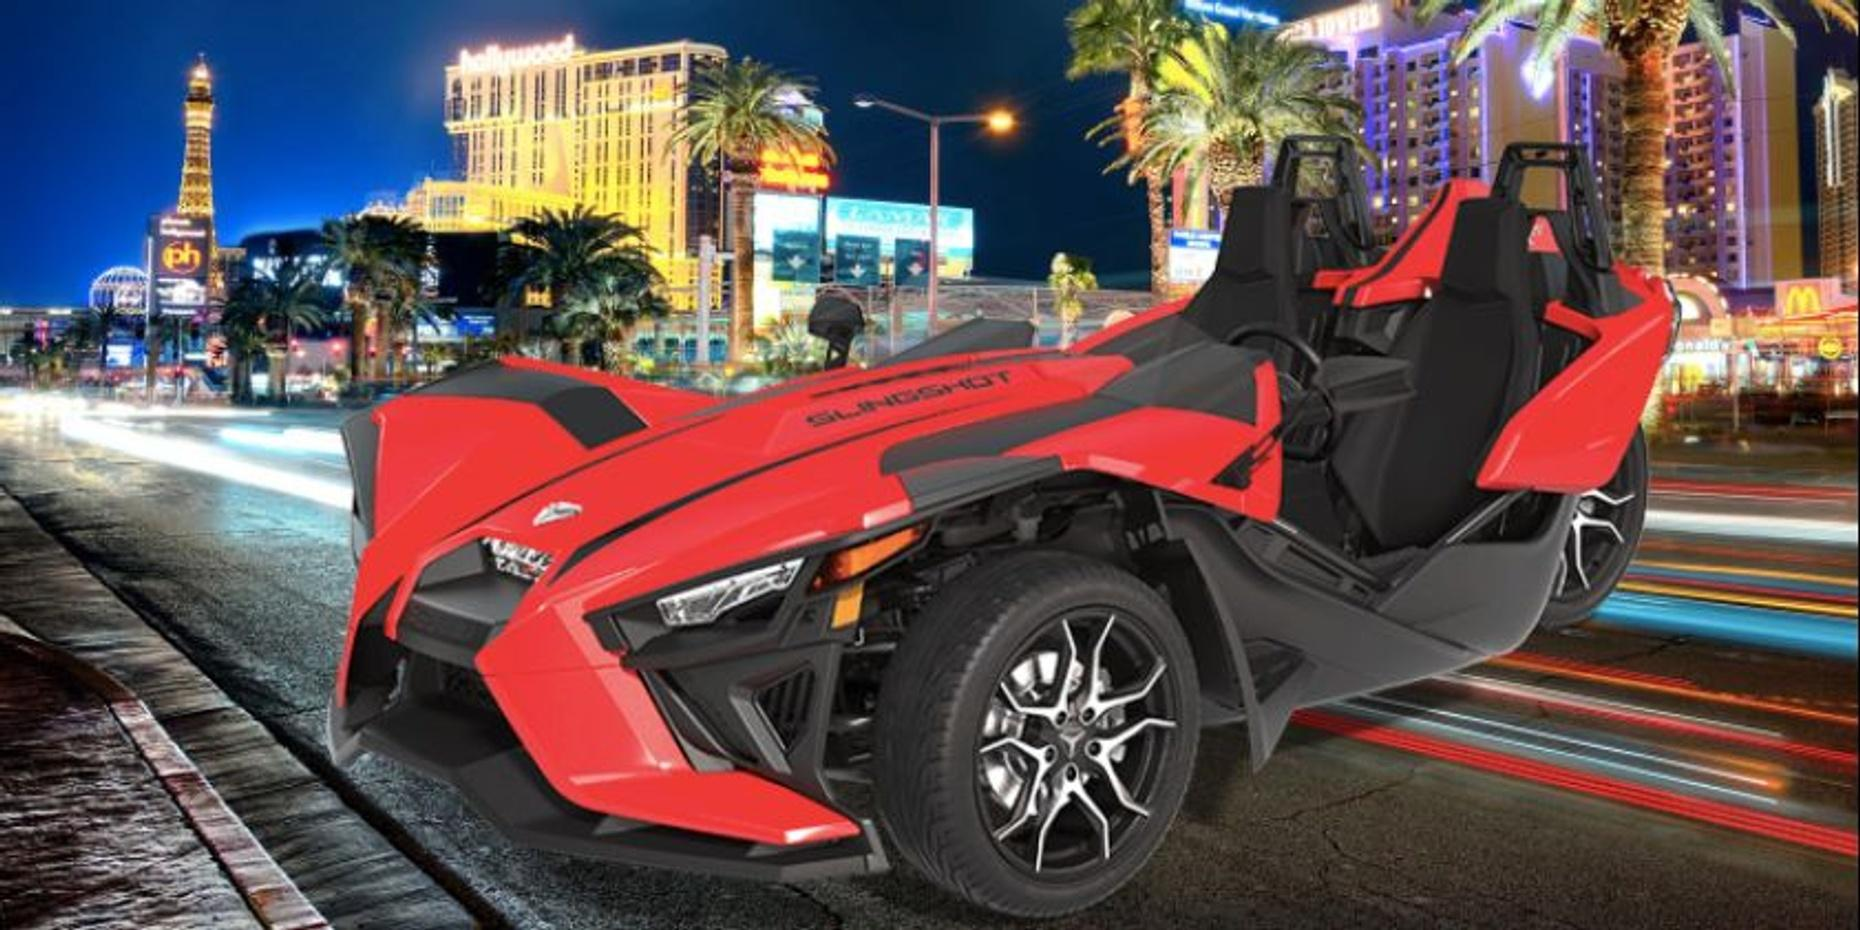 Polaris Slingshot 3-Hour Rental in Las Vegas